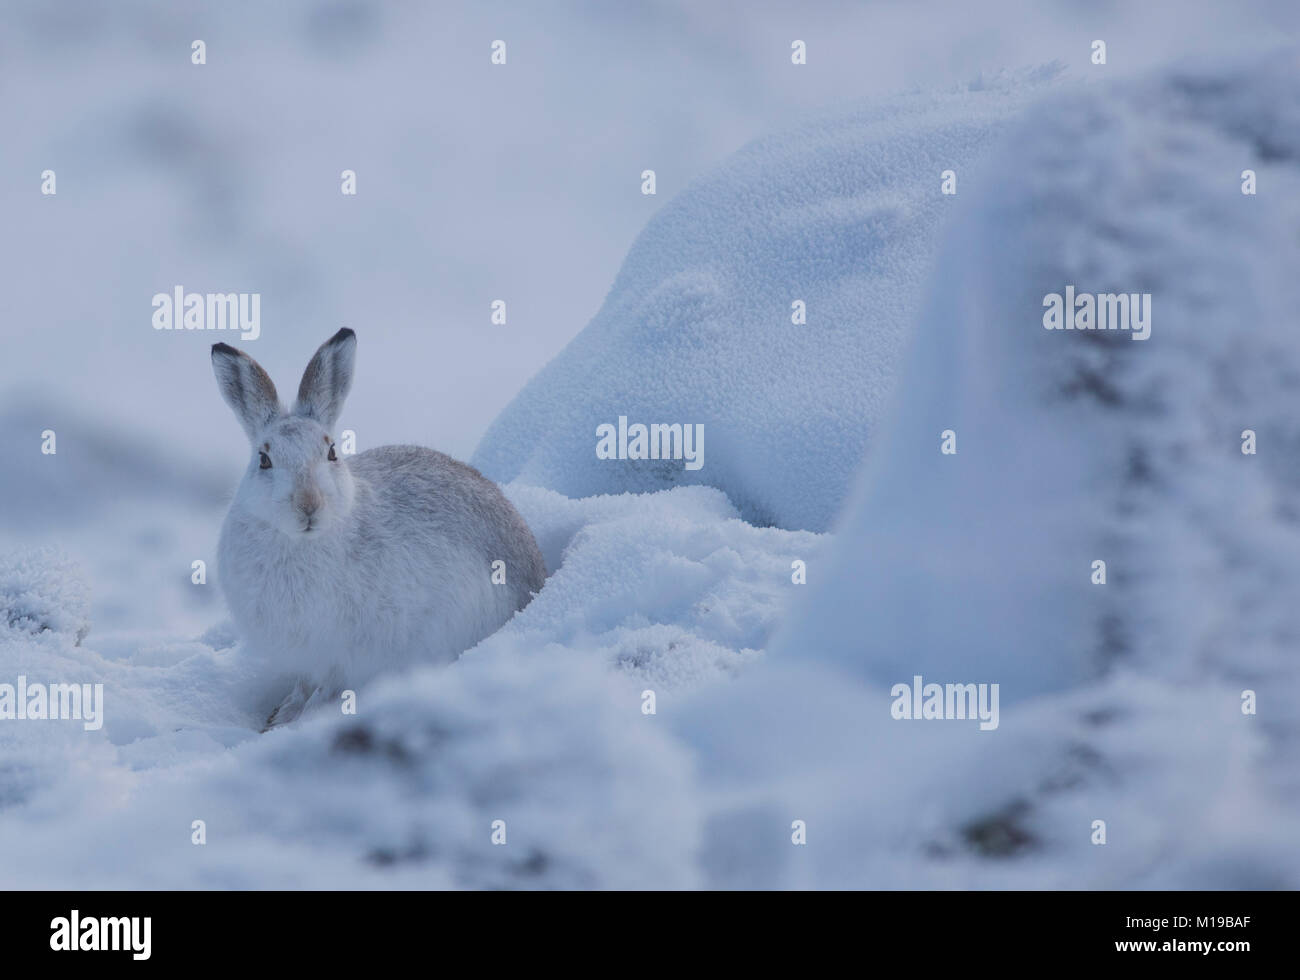 Mountain Hare Lepus timidus in its winter white coat in snow on a Scottish Mountain. - Stock Image